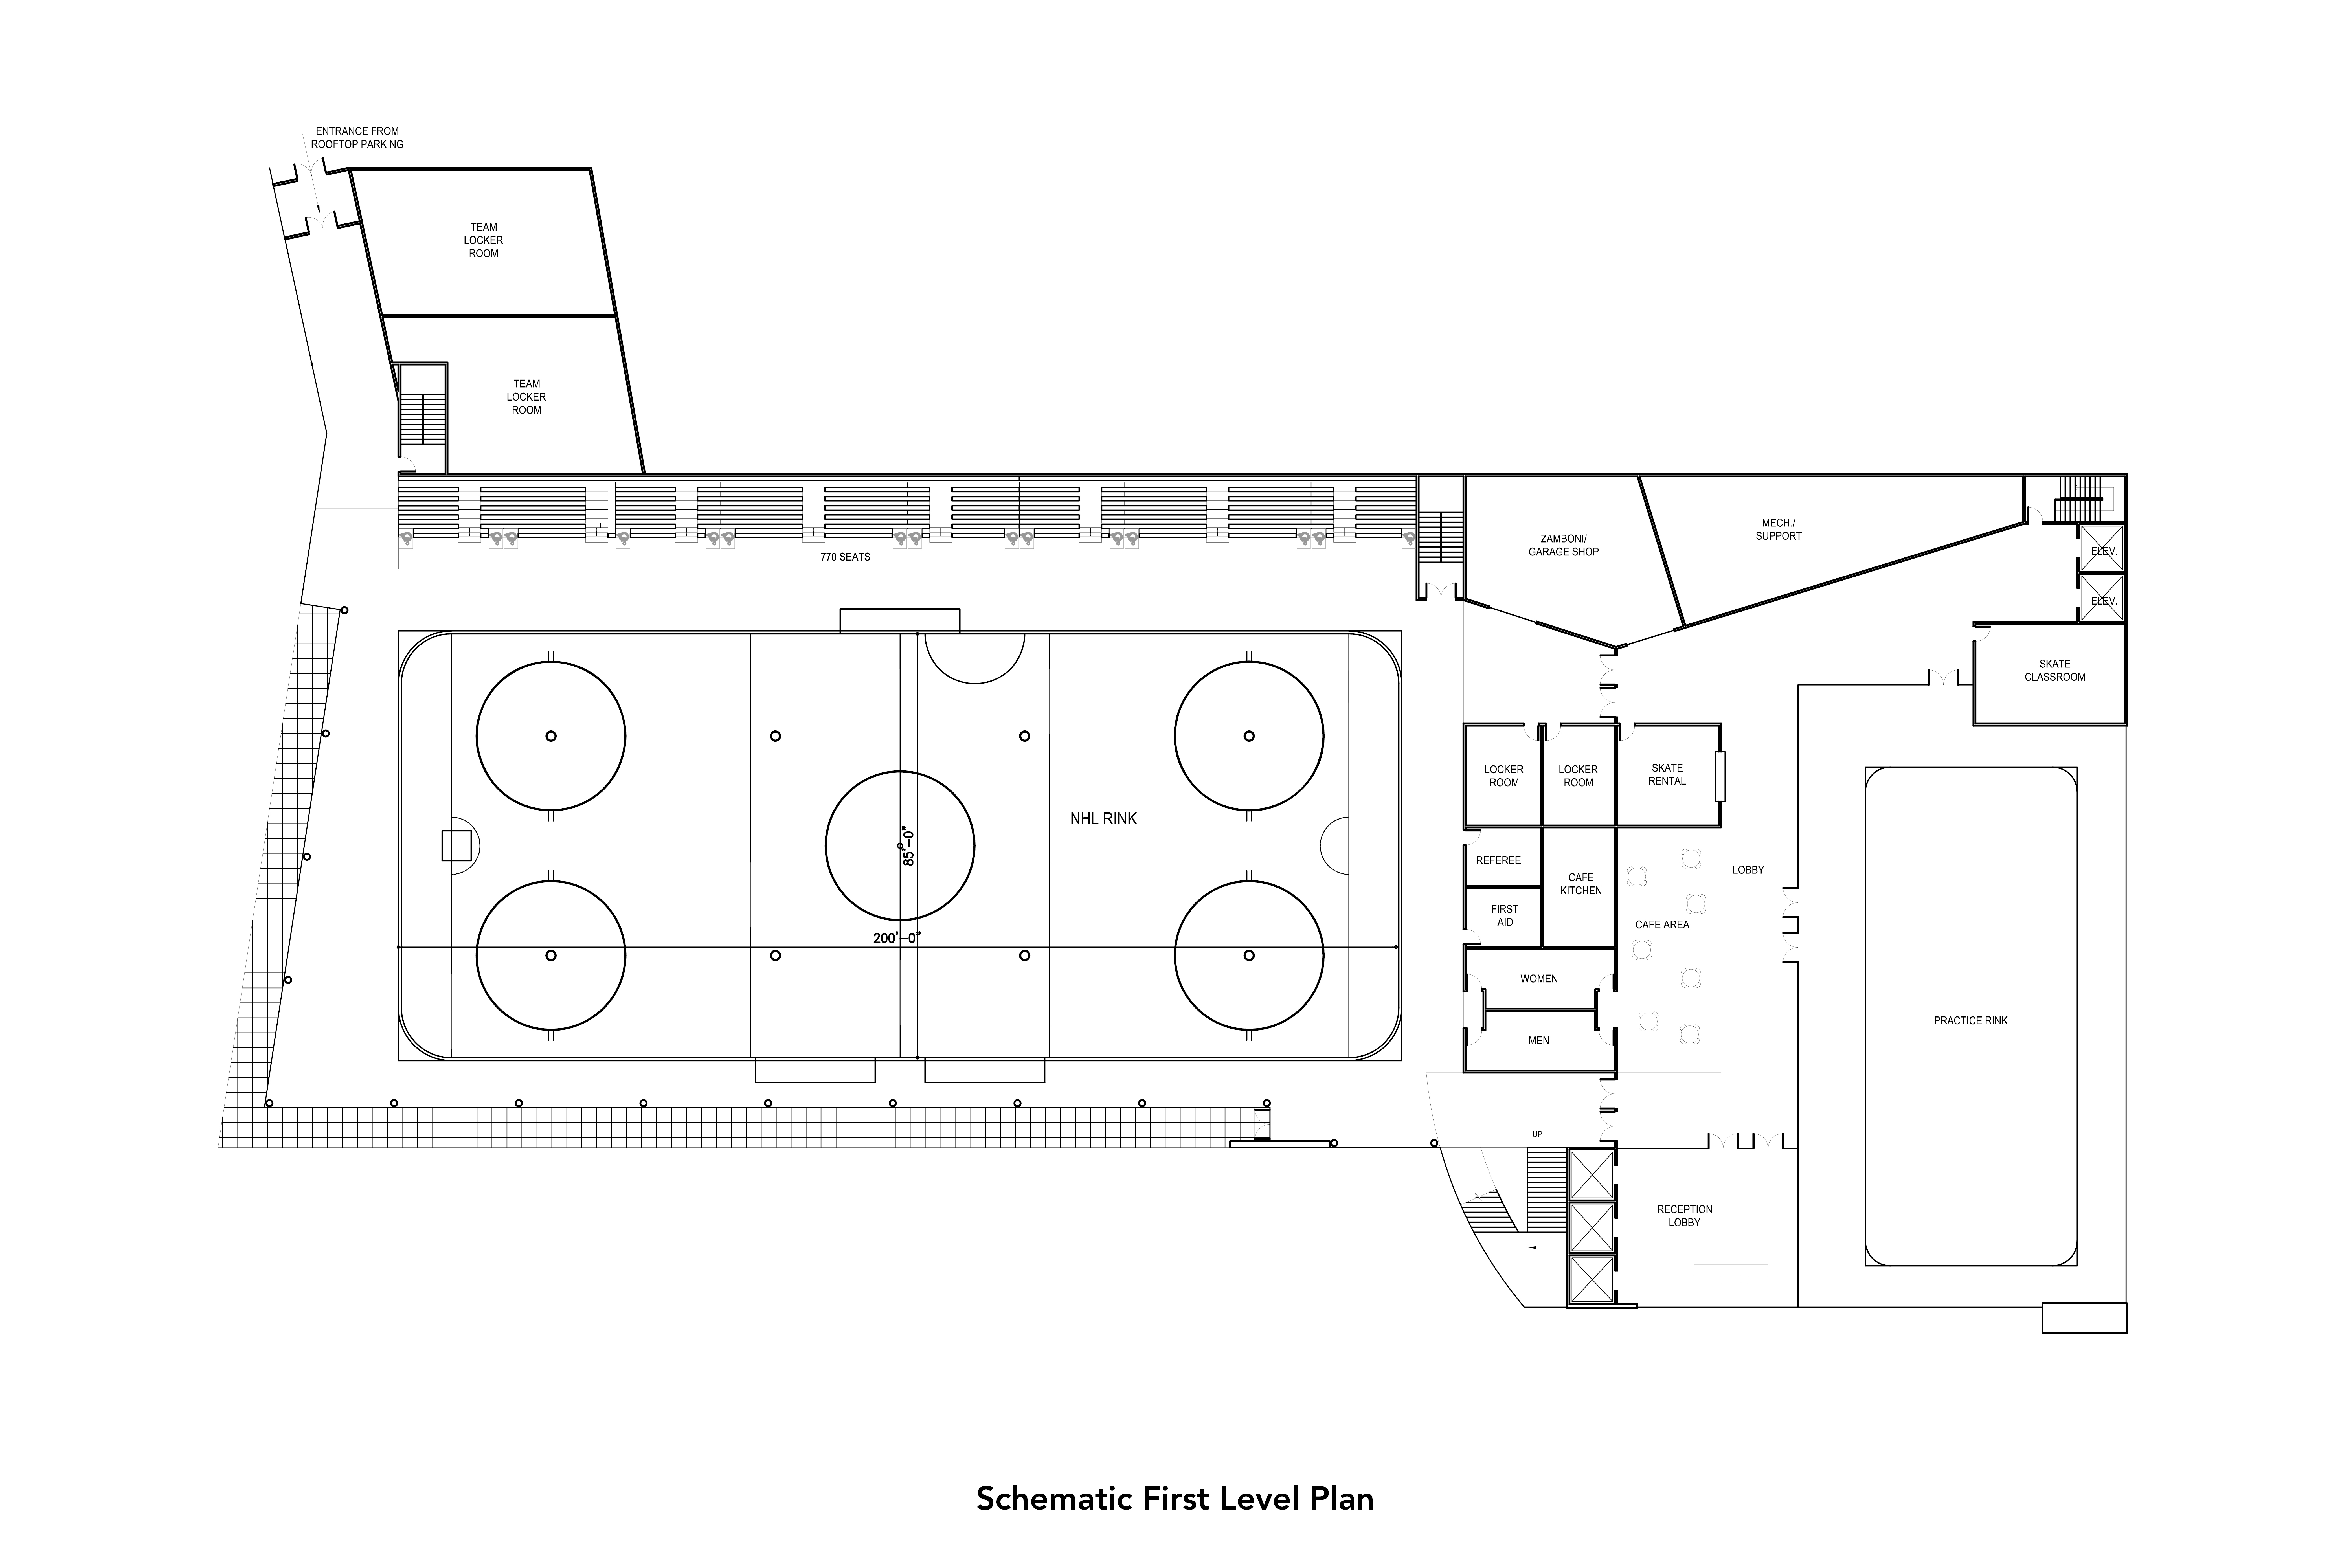 Battery Ice Arena – Proposed NY Ranger Practice Facility